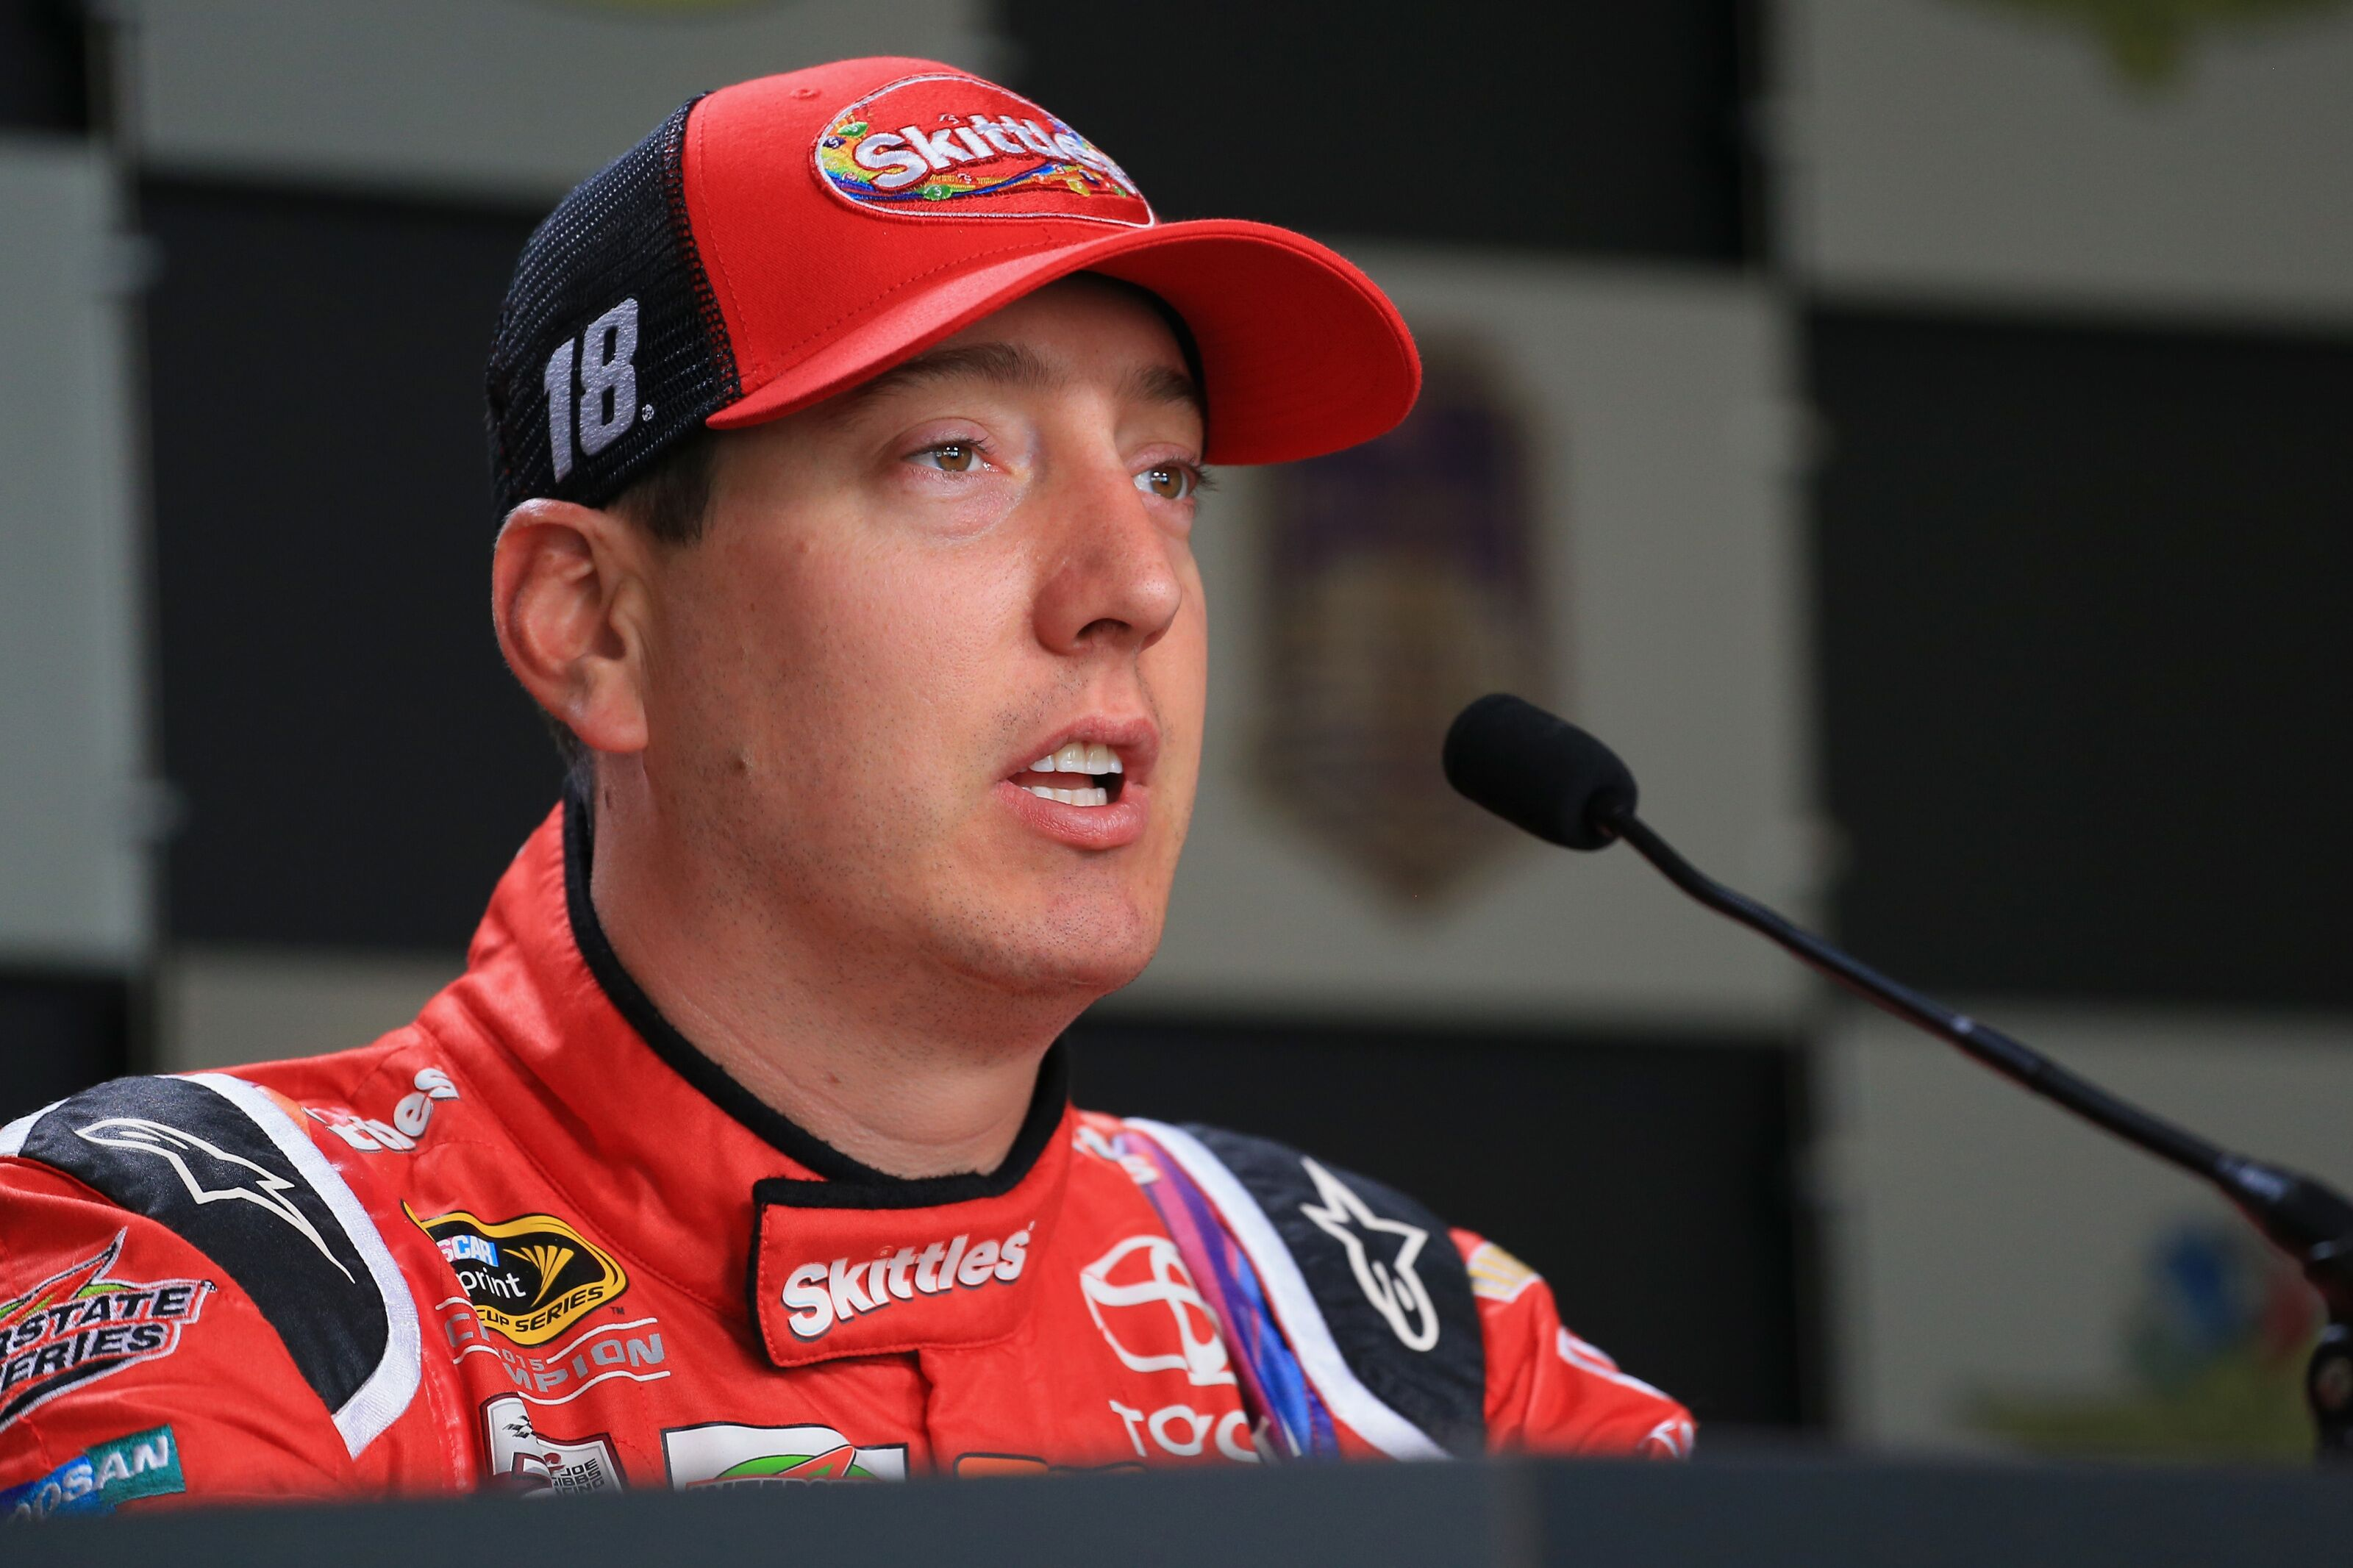 Indy 500: Kyle Busch to Ed Carpenter Racing in 2020? – Beyond the Flag